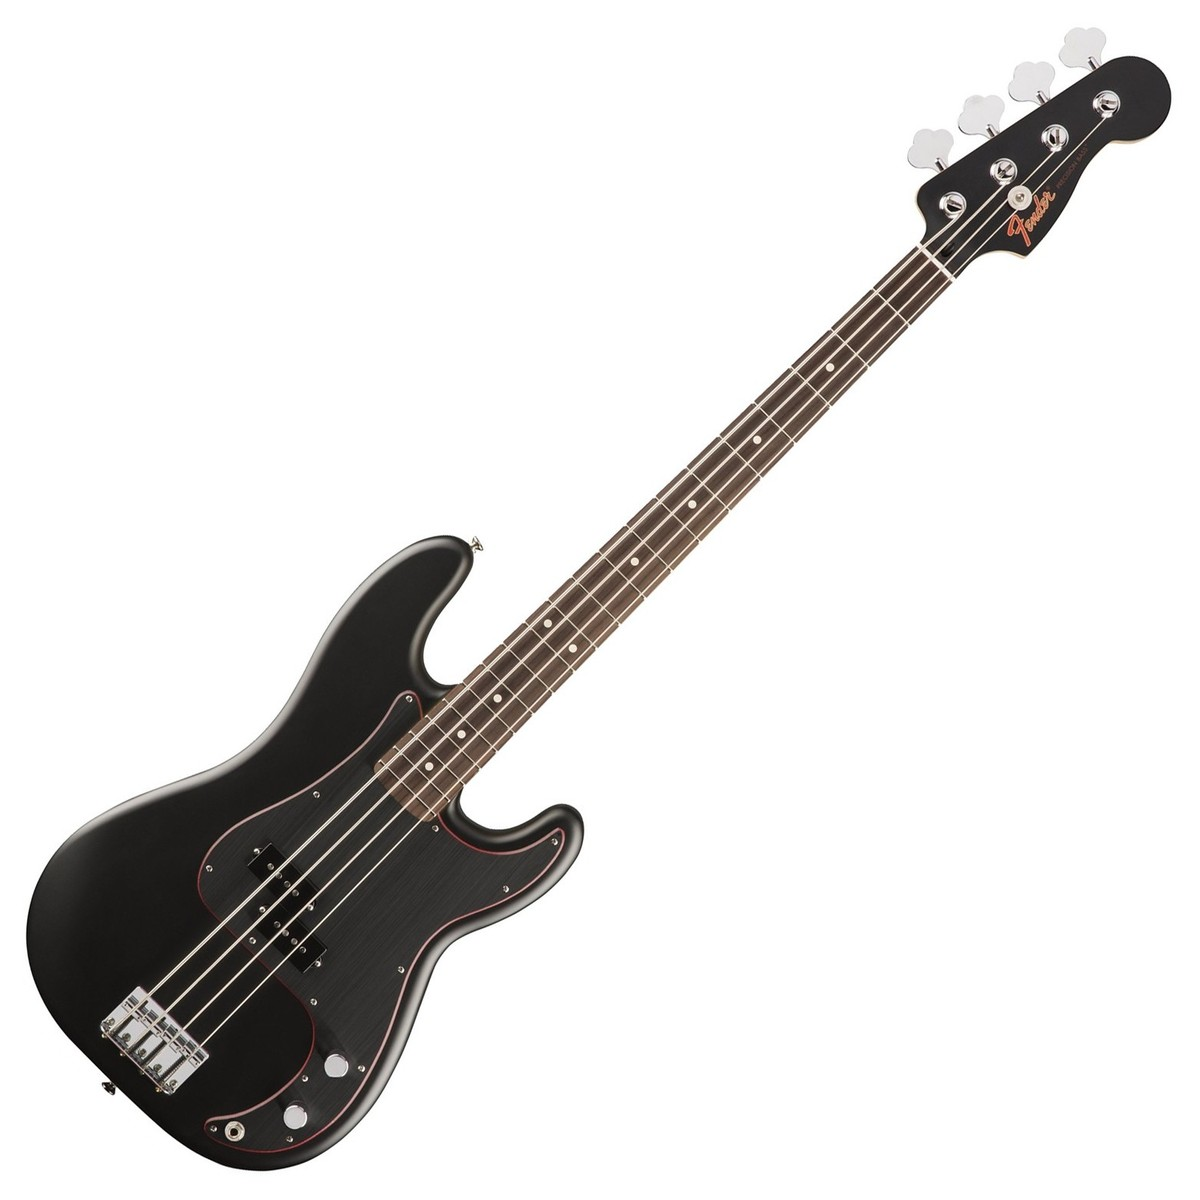 disc fender special edition precision bass noir pf satin. Black Bedroom Furniture Sets. Home Design Ideas